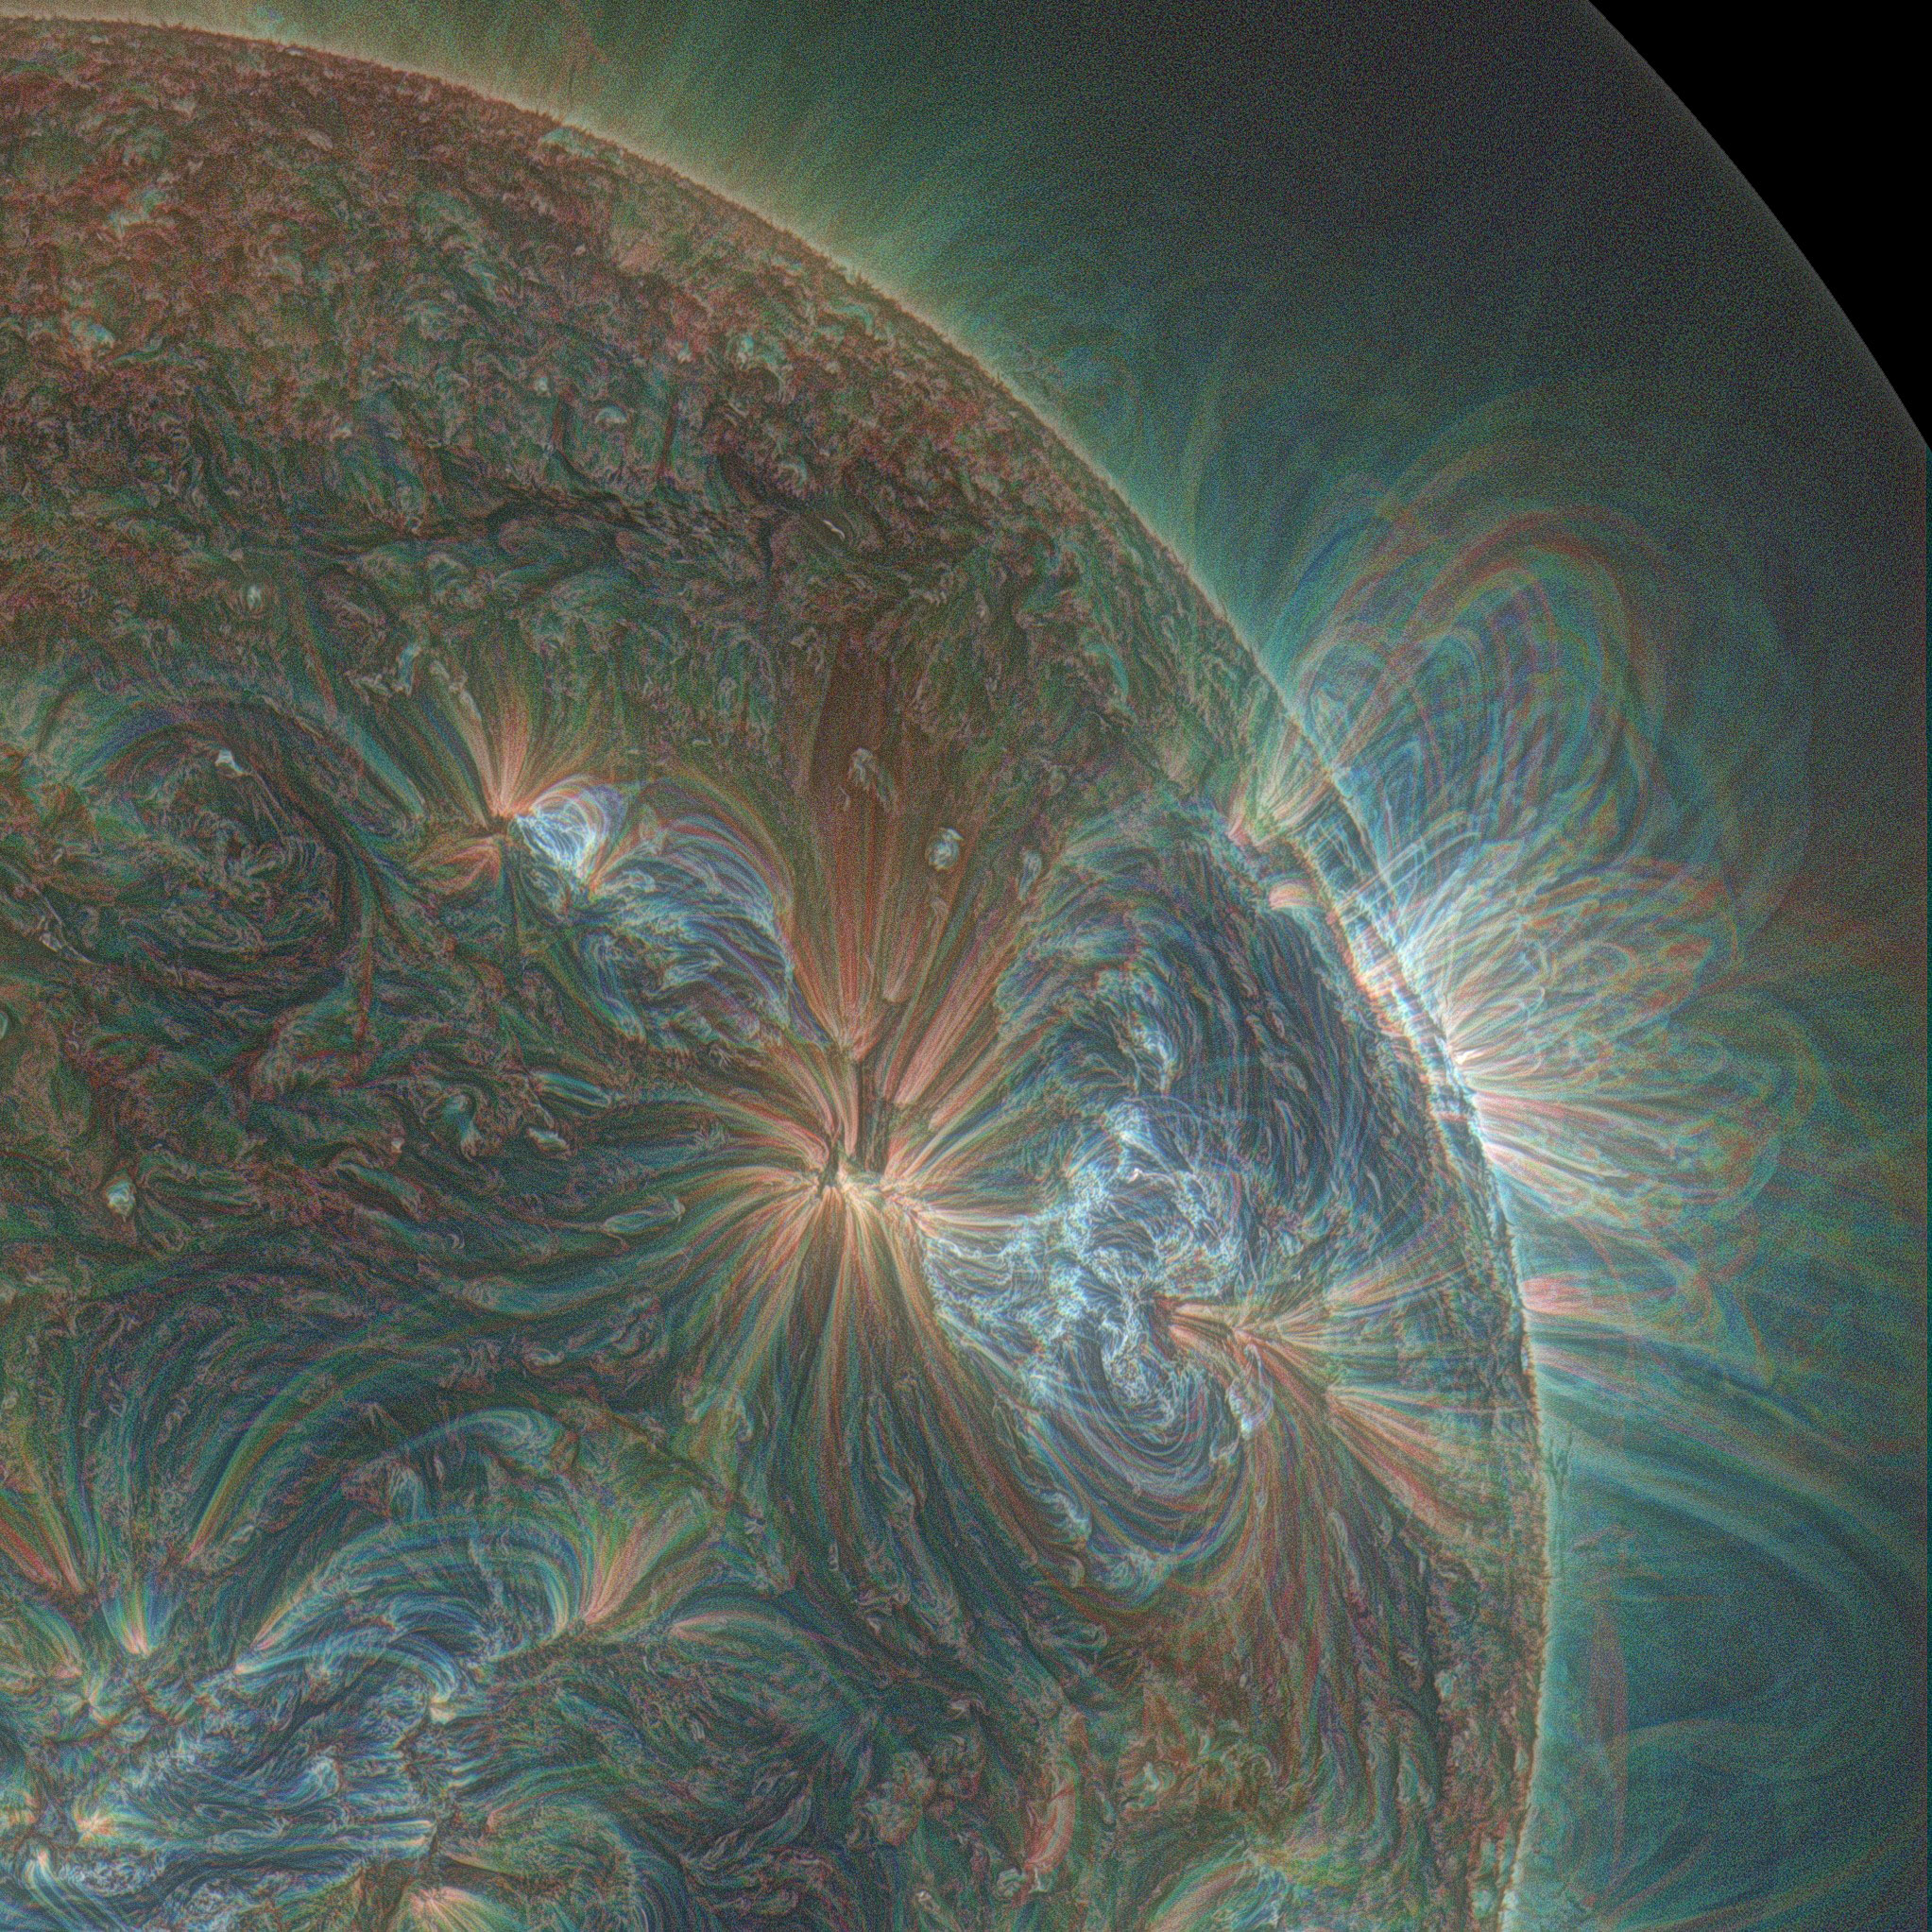 www.nasa.gov/sites/default/files/alzate_sdo_rgb_0.jpg